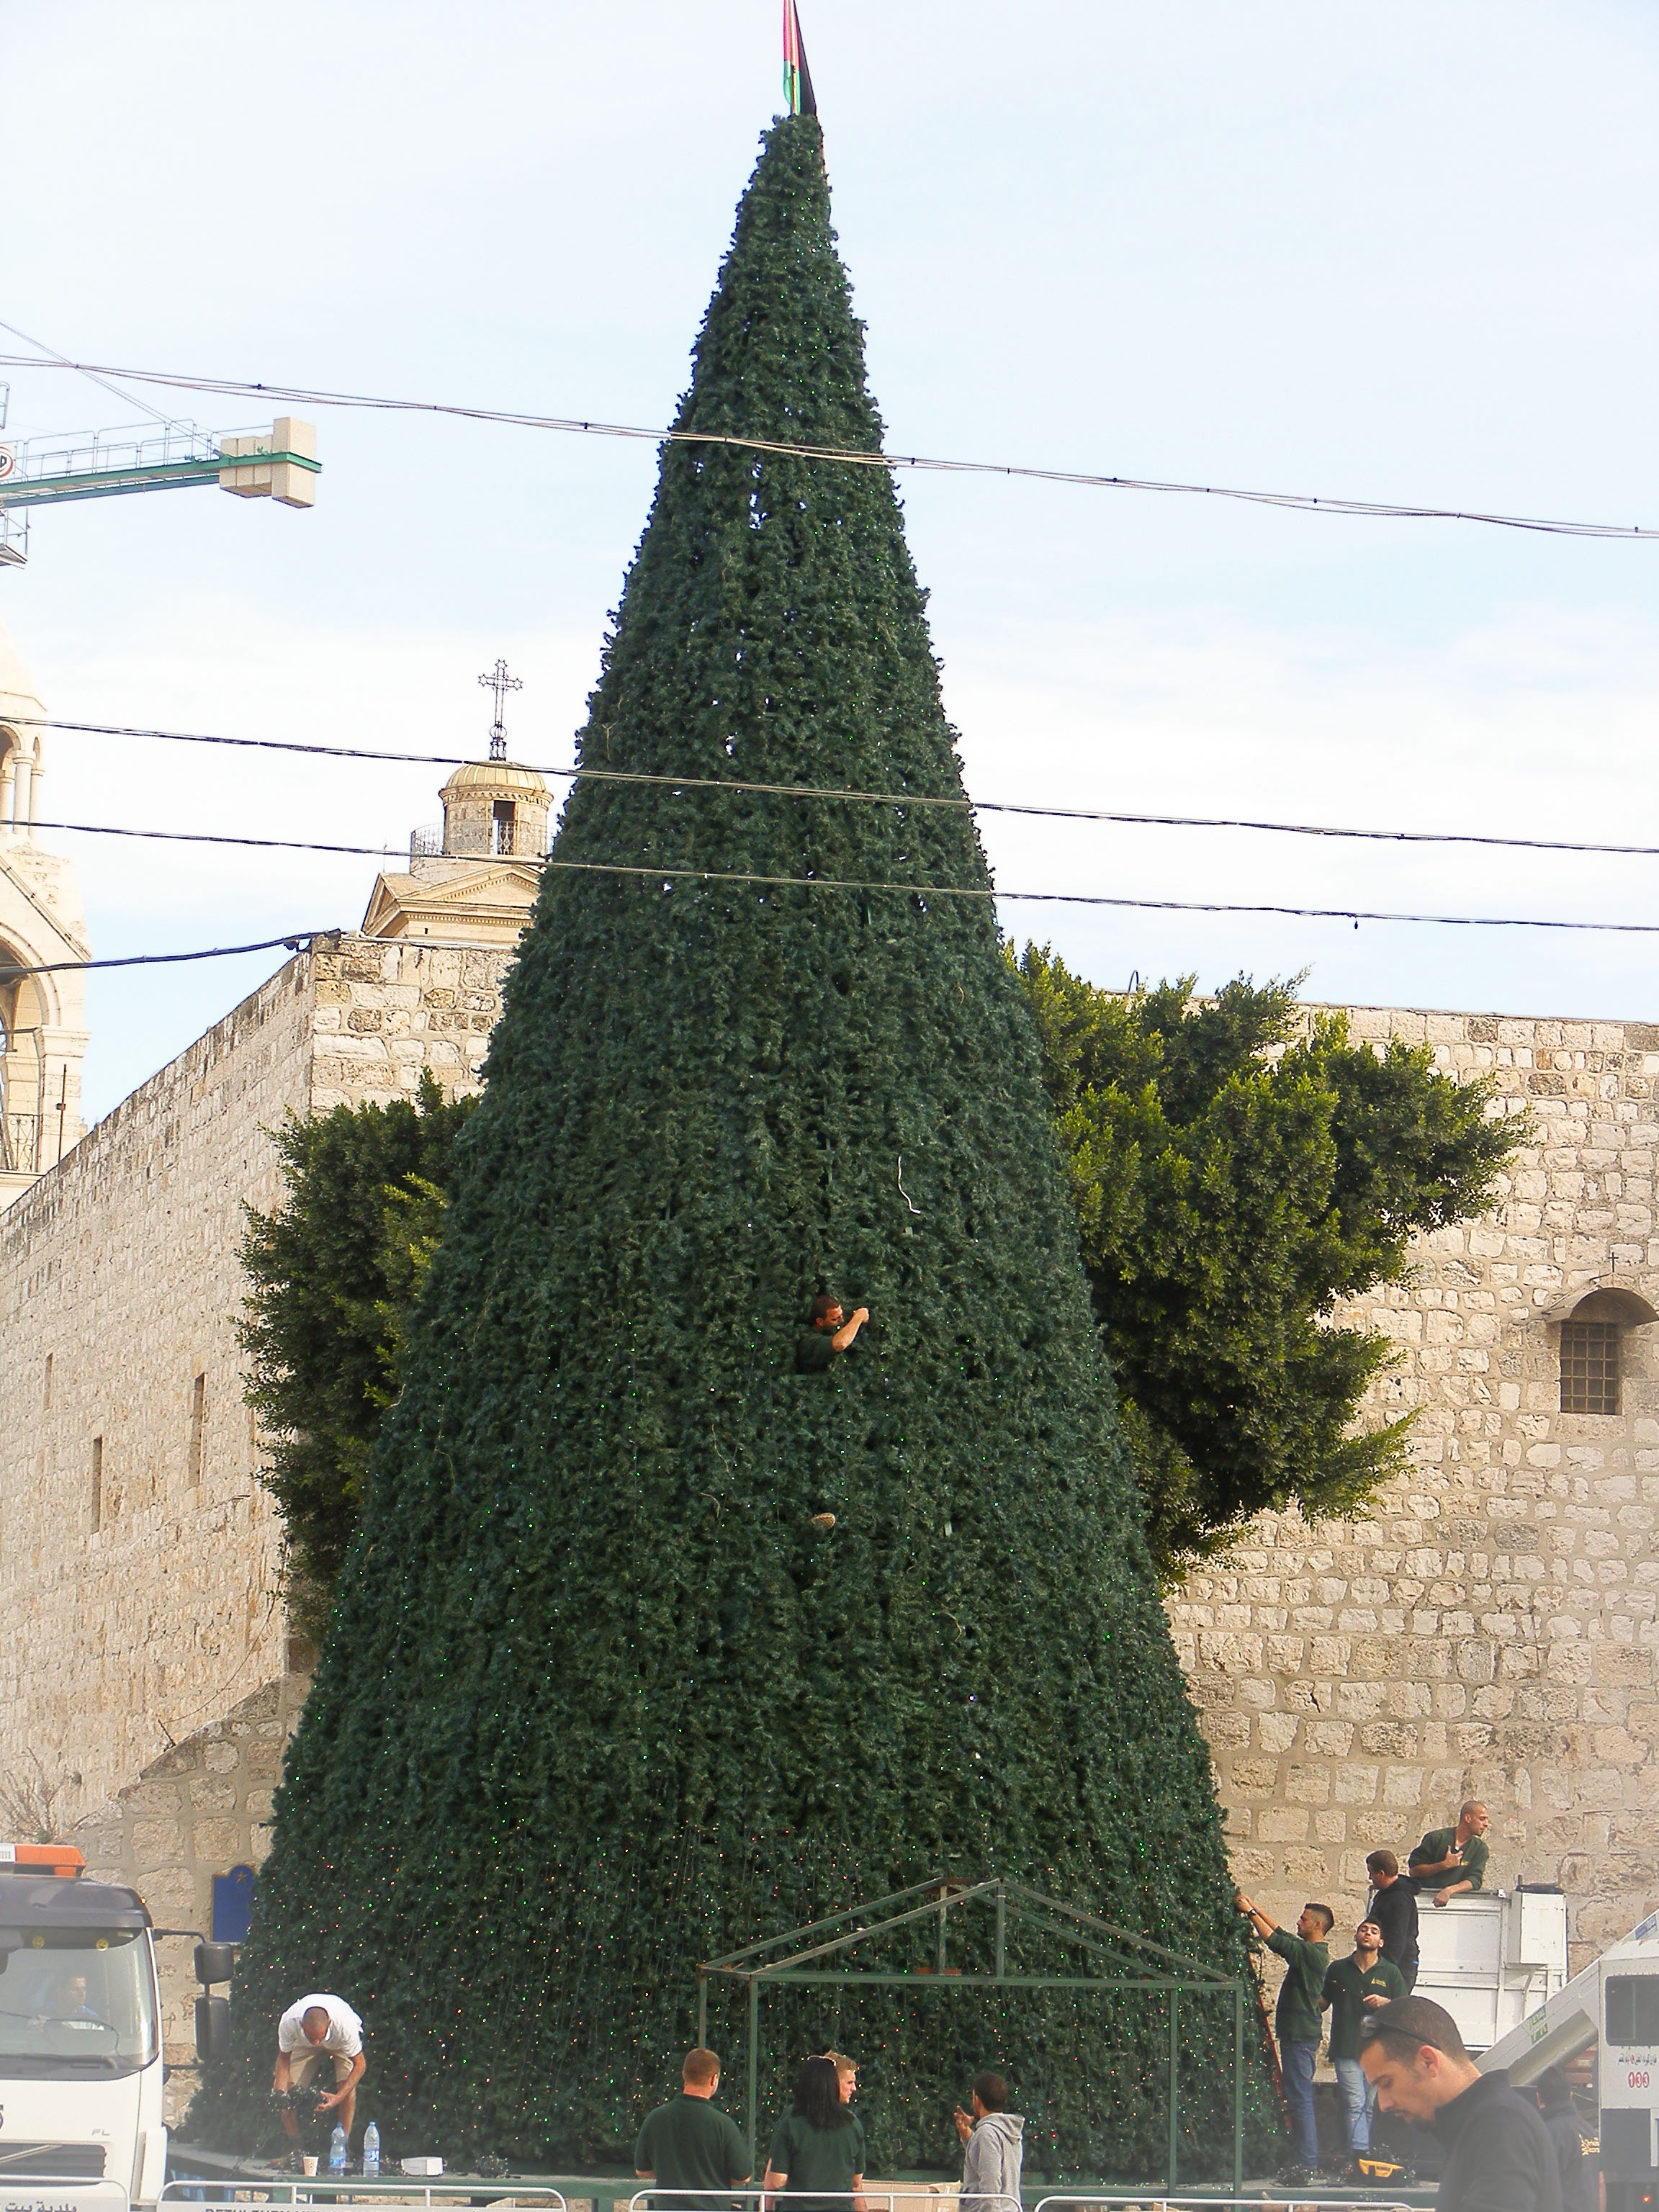 Preparation of the Christmas tree in Manger Square, Bethlehem. Church of the Nativity in the background.